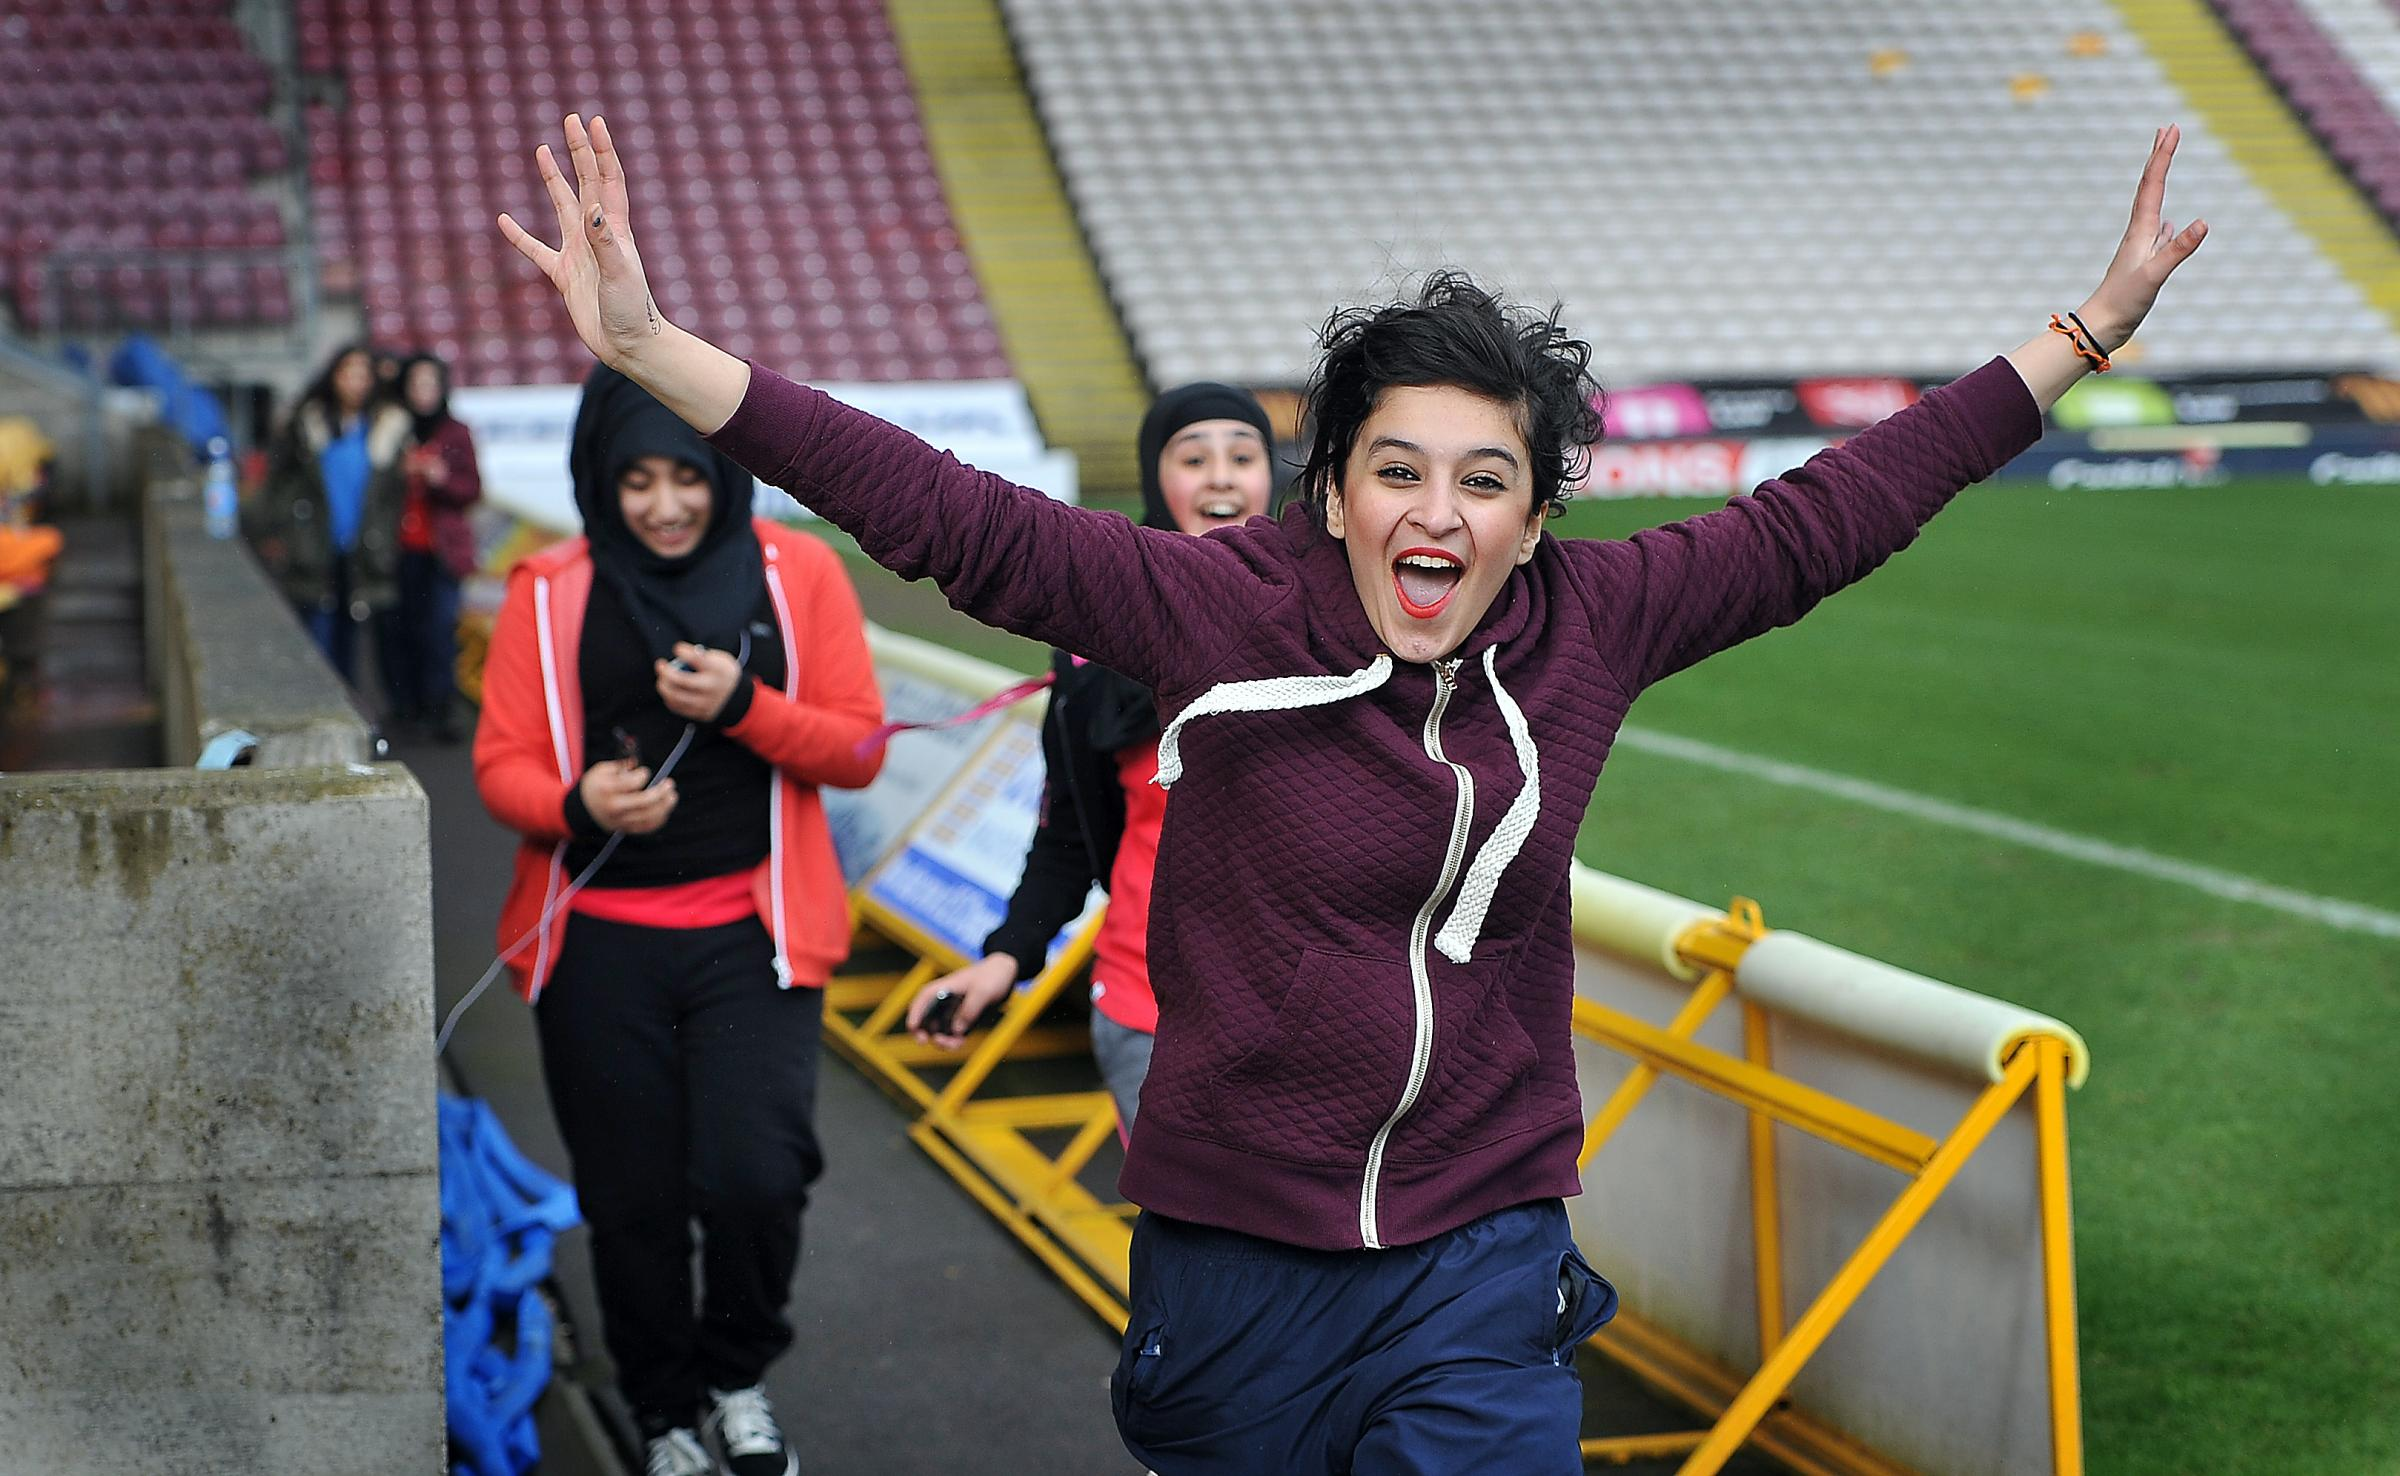 Belle Vue Girls' School pupils run their mile for Sport Relief at Valley Parade